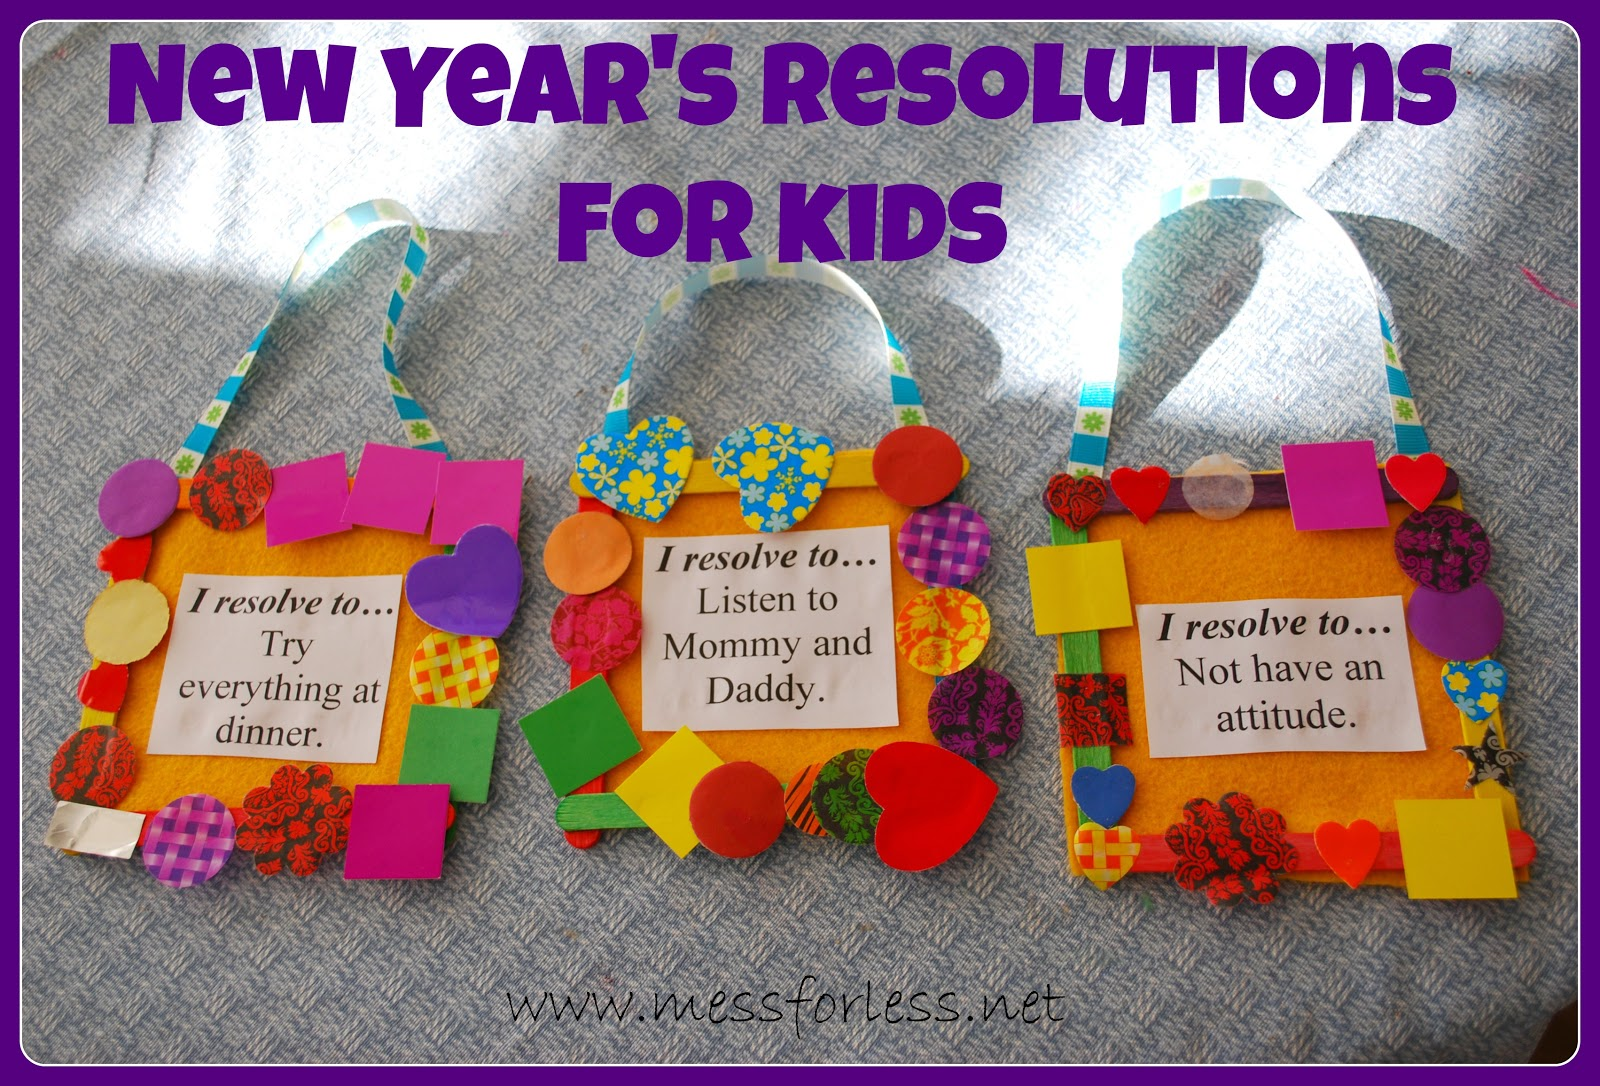 How much is the New Year for a child